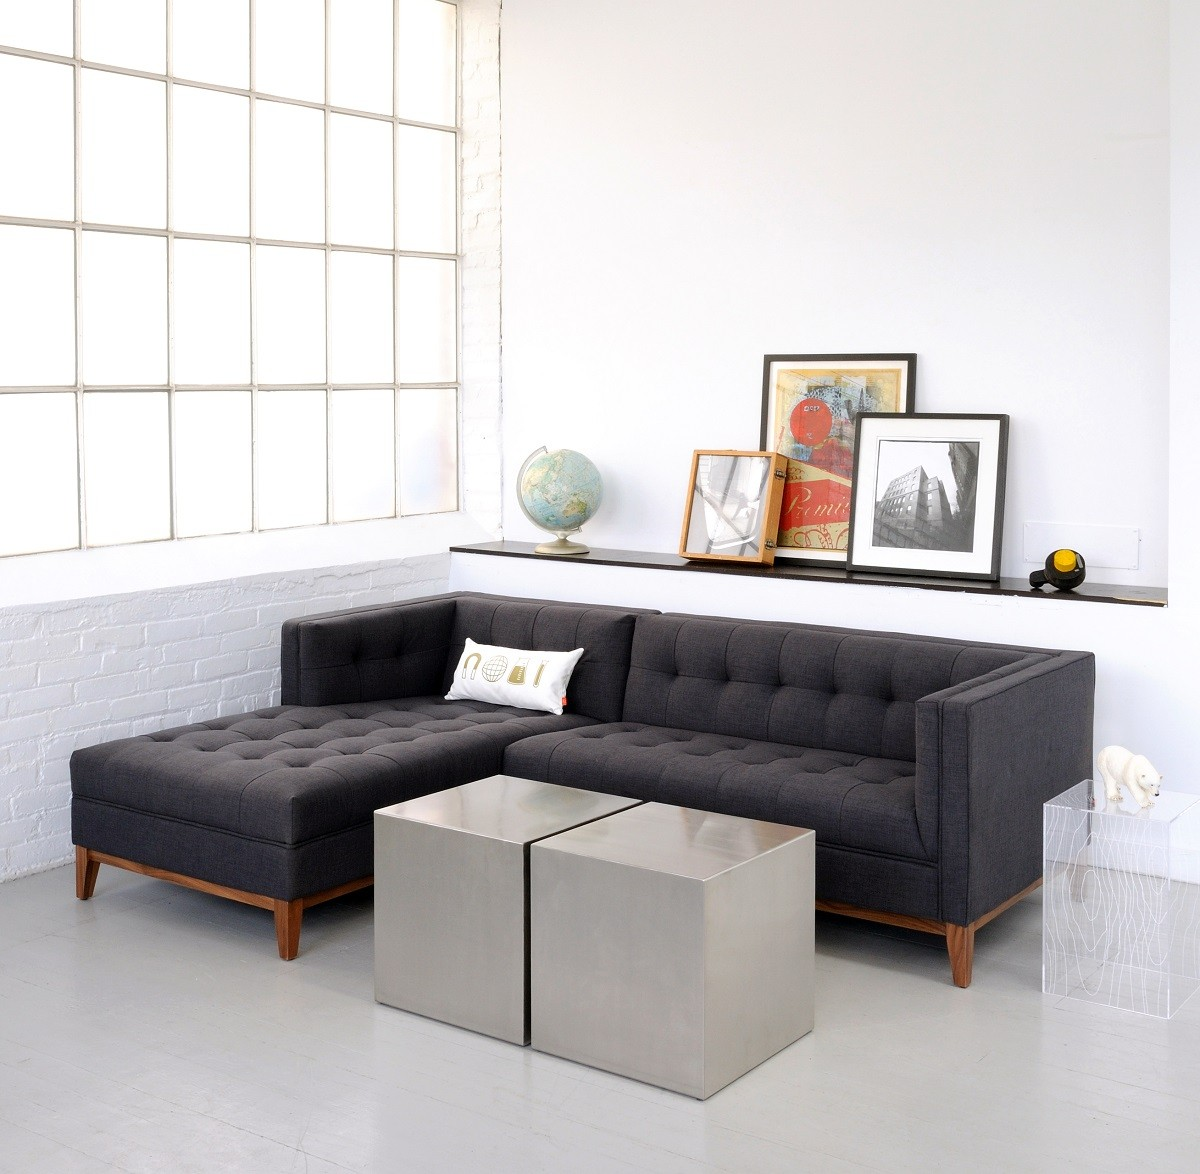 Apartment Sectional The Best Apartment Sectional Sofas Solving Function And Style